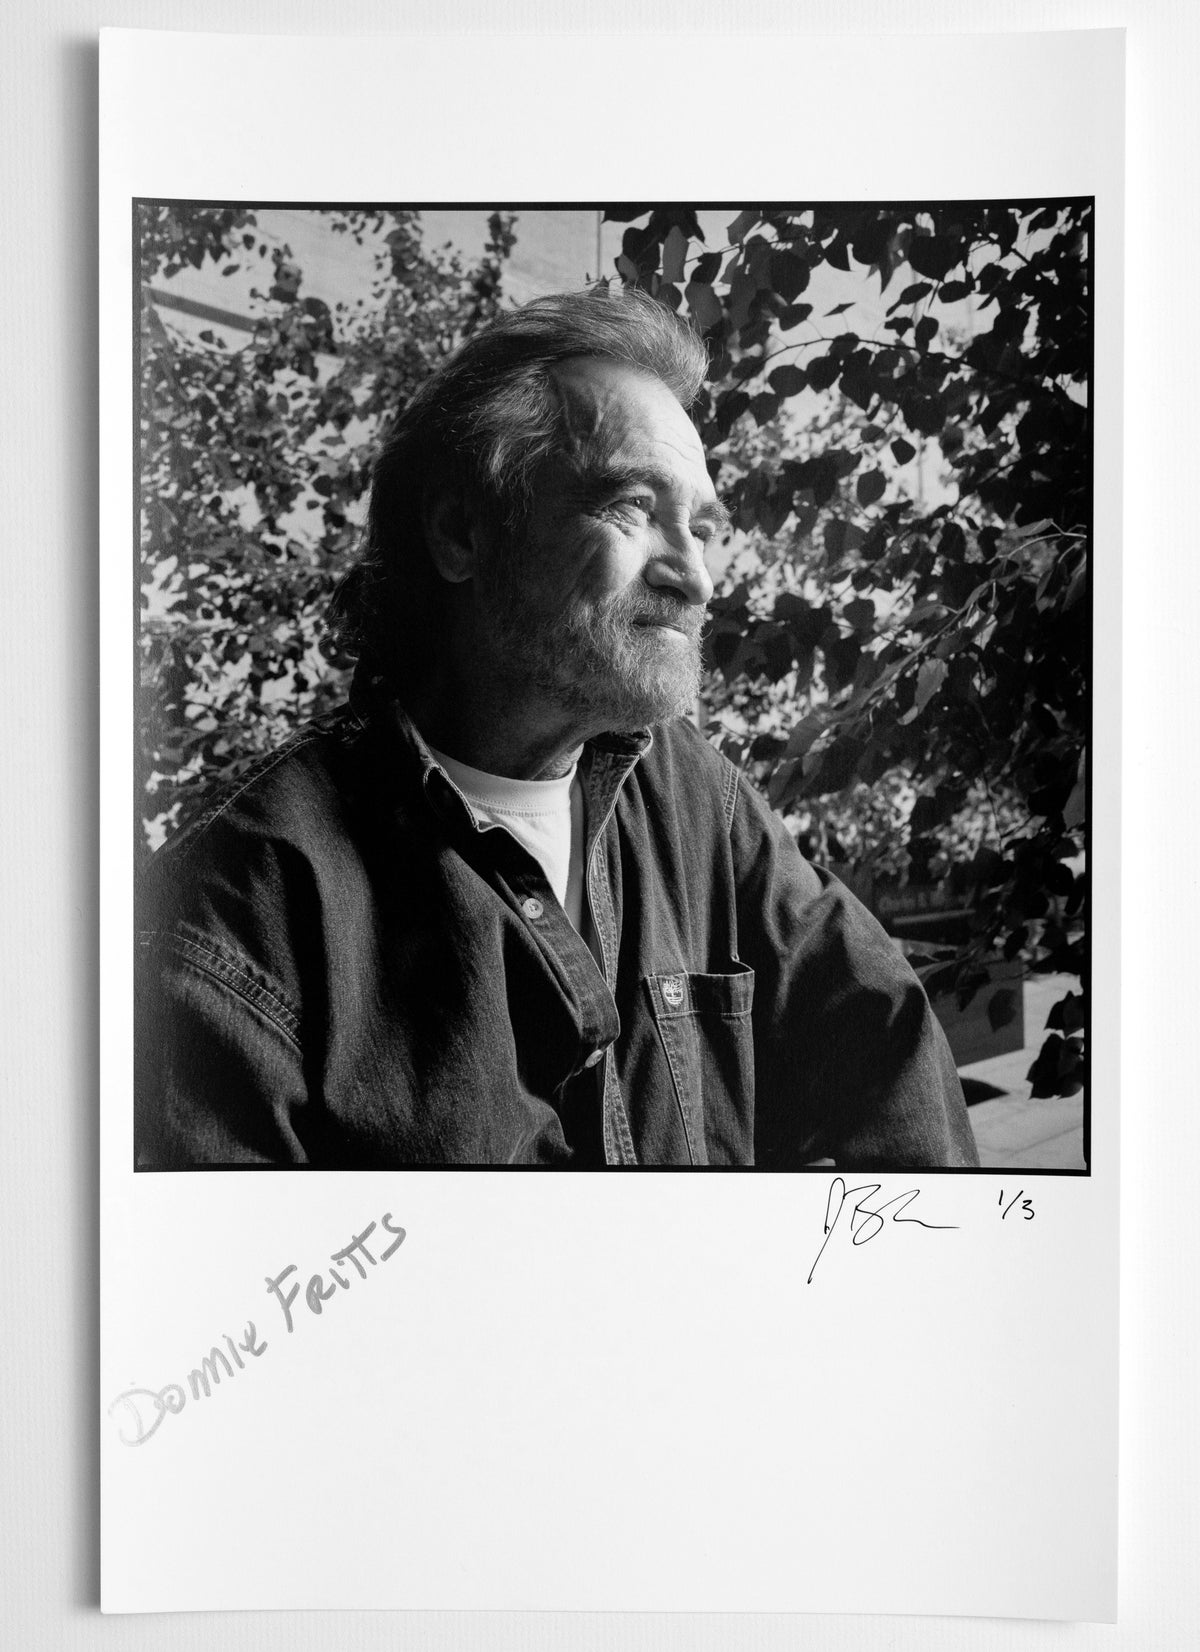 Donnie Fritts - Signed